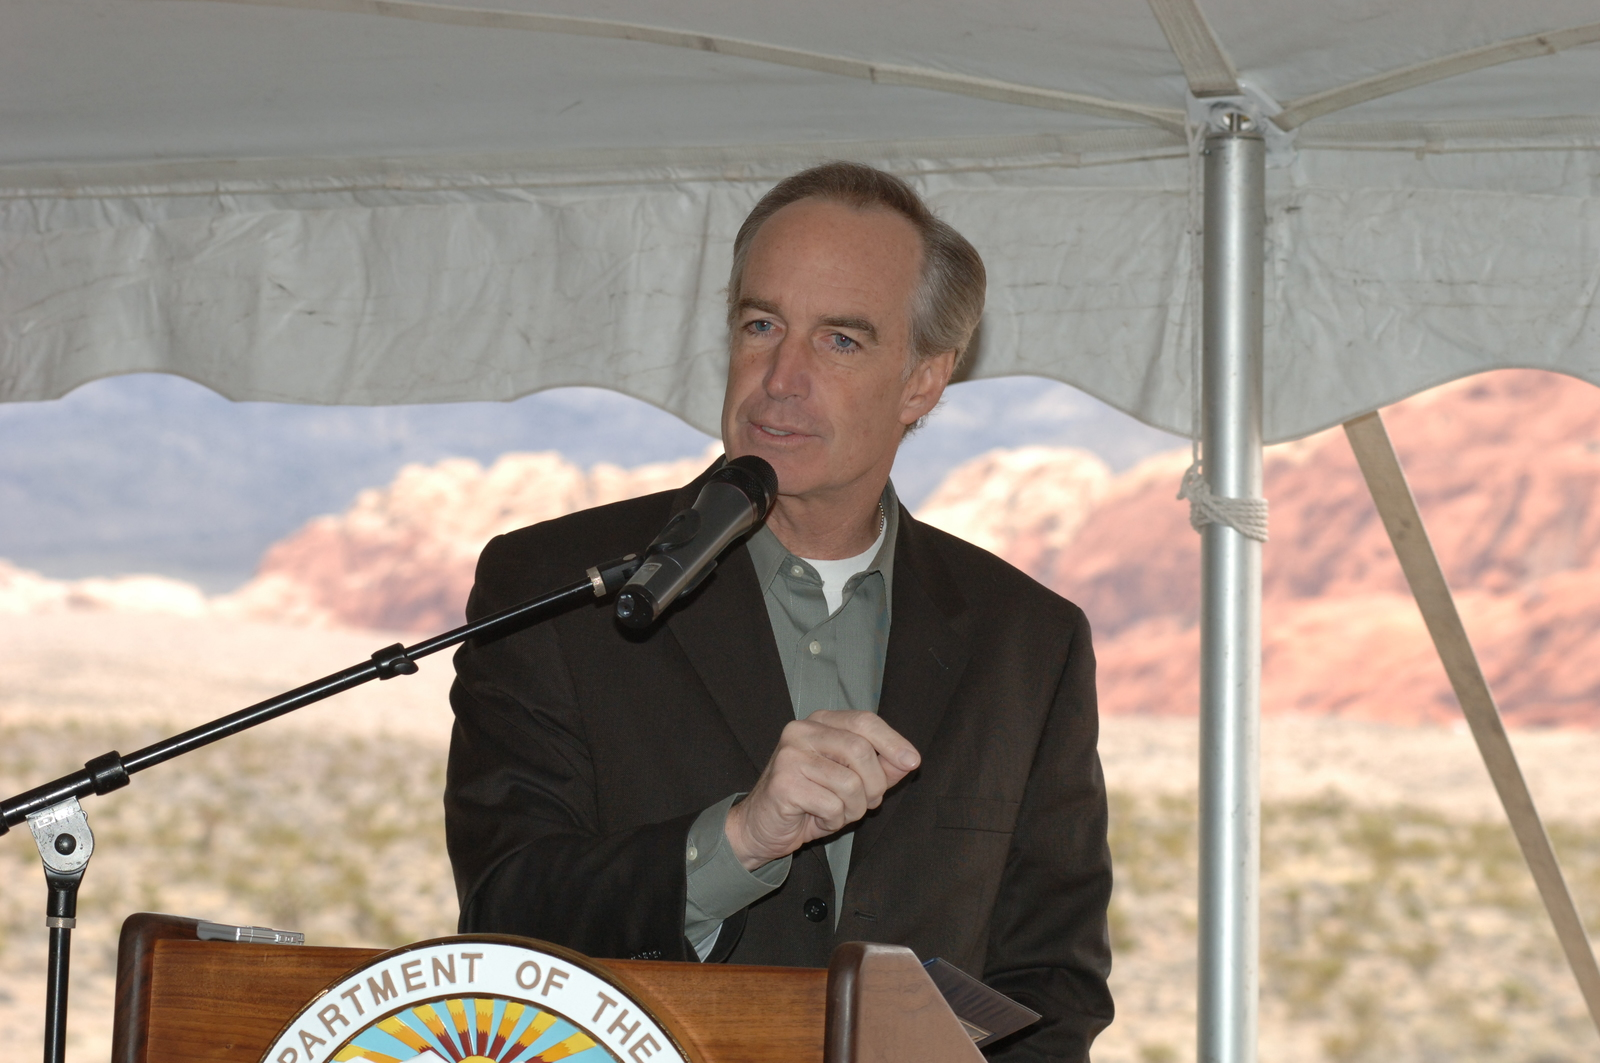 [Assignment: 48-DPA-02-20-08_SOI_K_BLM_Red_Rock] Groundbreaking ceremony for a new visitor center at Red Rock Canyon National Conservation Area, Nevada, [and announcement of new funding for 49 projects under Round 8 of the Southern Nevada Public Land Management Act], with Secretary Dirk Kempthorne [joining Nevada Senators Harry Reid and John Ensign, Nevada Representatives Shelley Berkley and Jon Porter, and other federal, state, and National Landscape Conservation Foundation officials] [48-DPA-02-20-08_SOI_K_BLM_Red_Rock_DOI_9884.JPG]